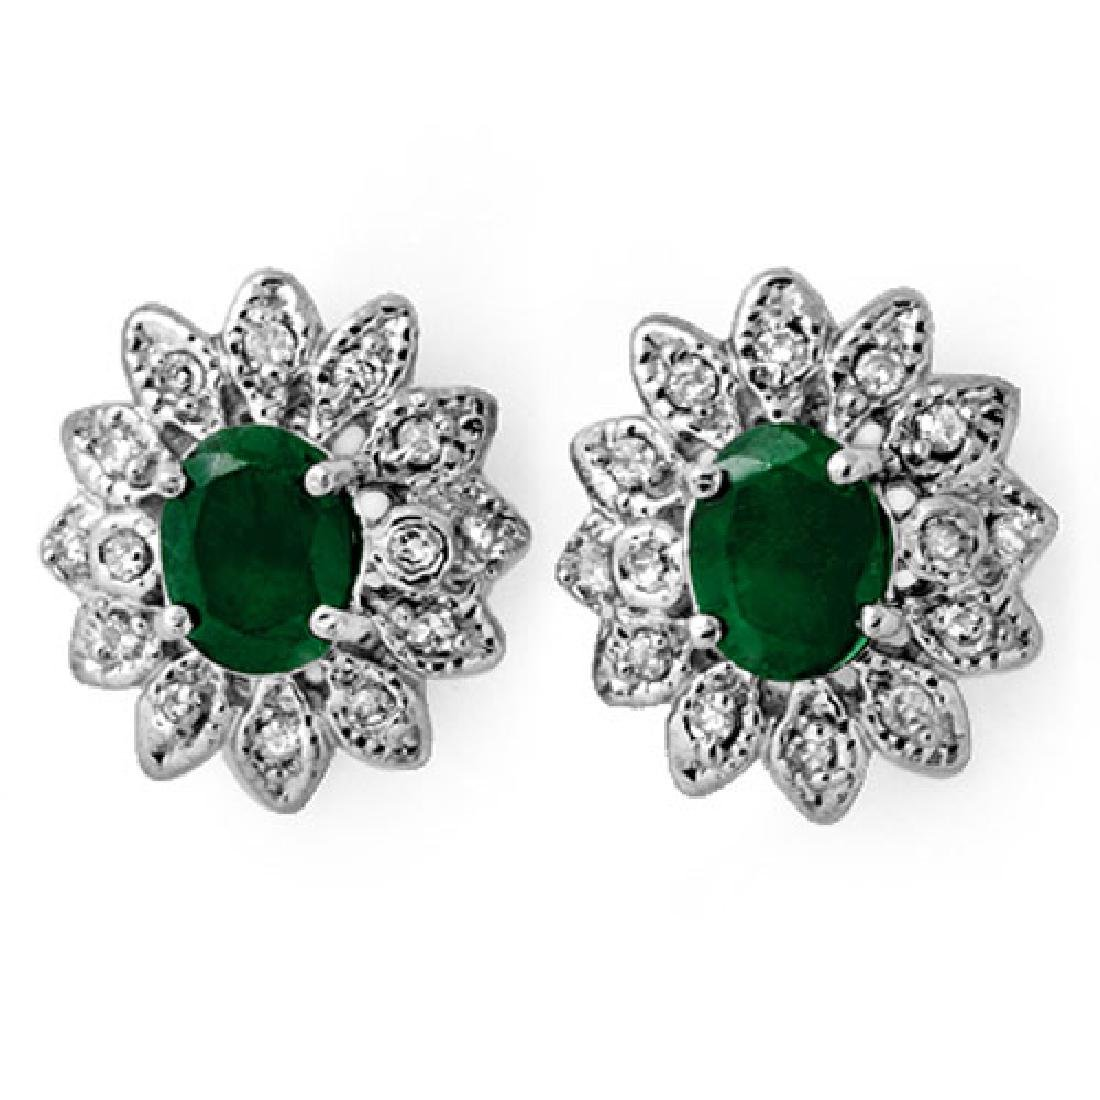 3.10 CTW Emerald & Diamond Earrings 14K White Gold